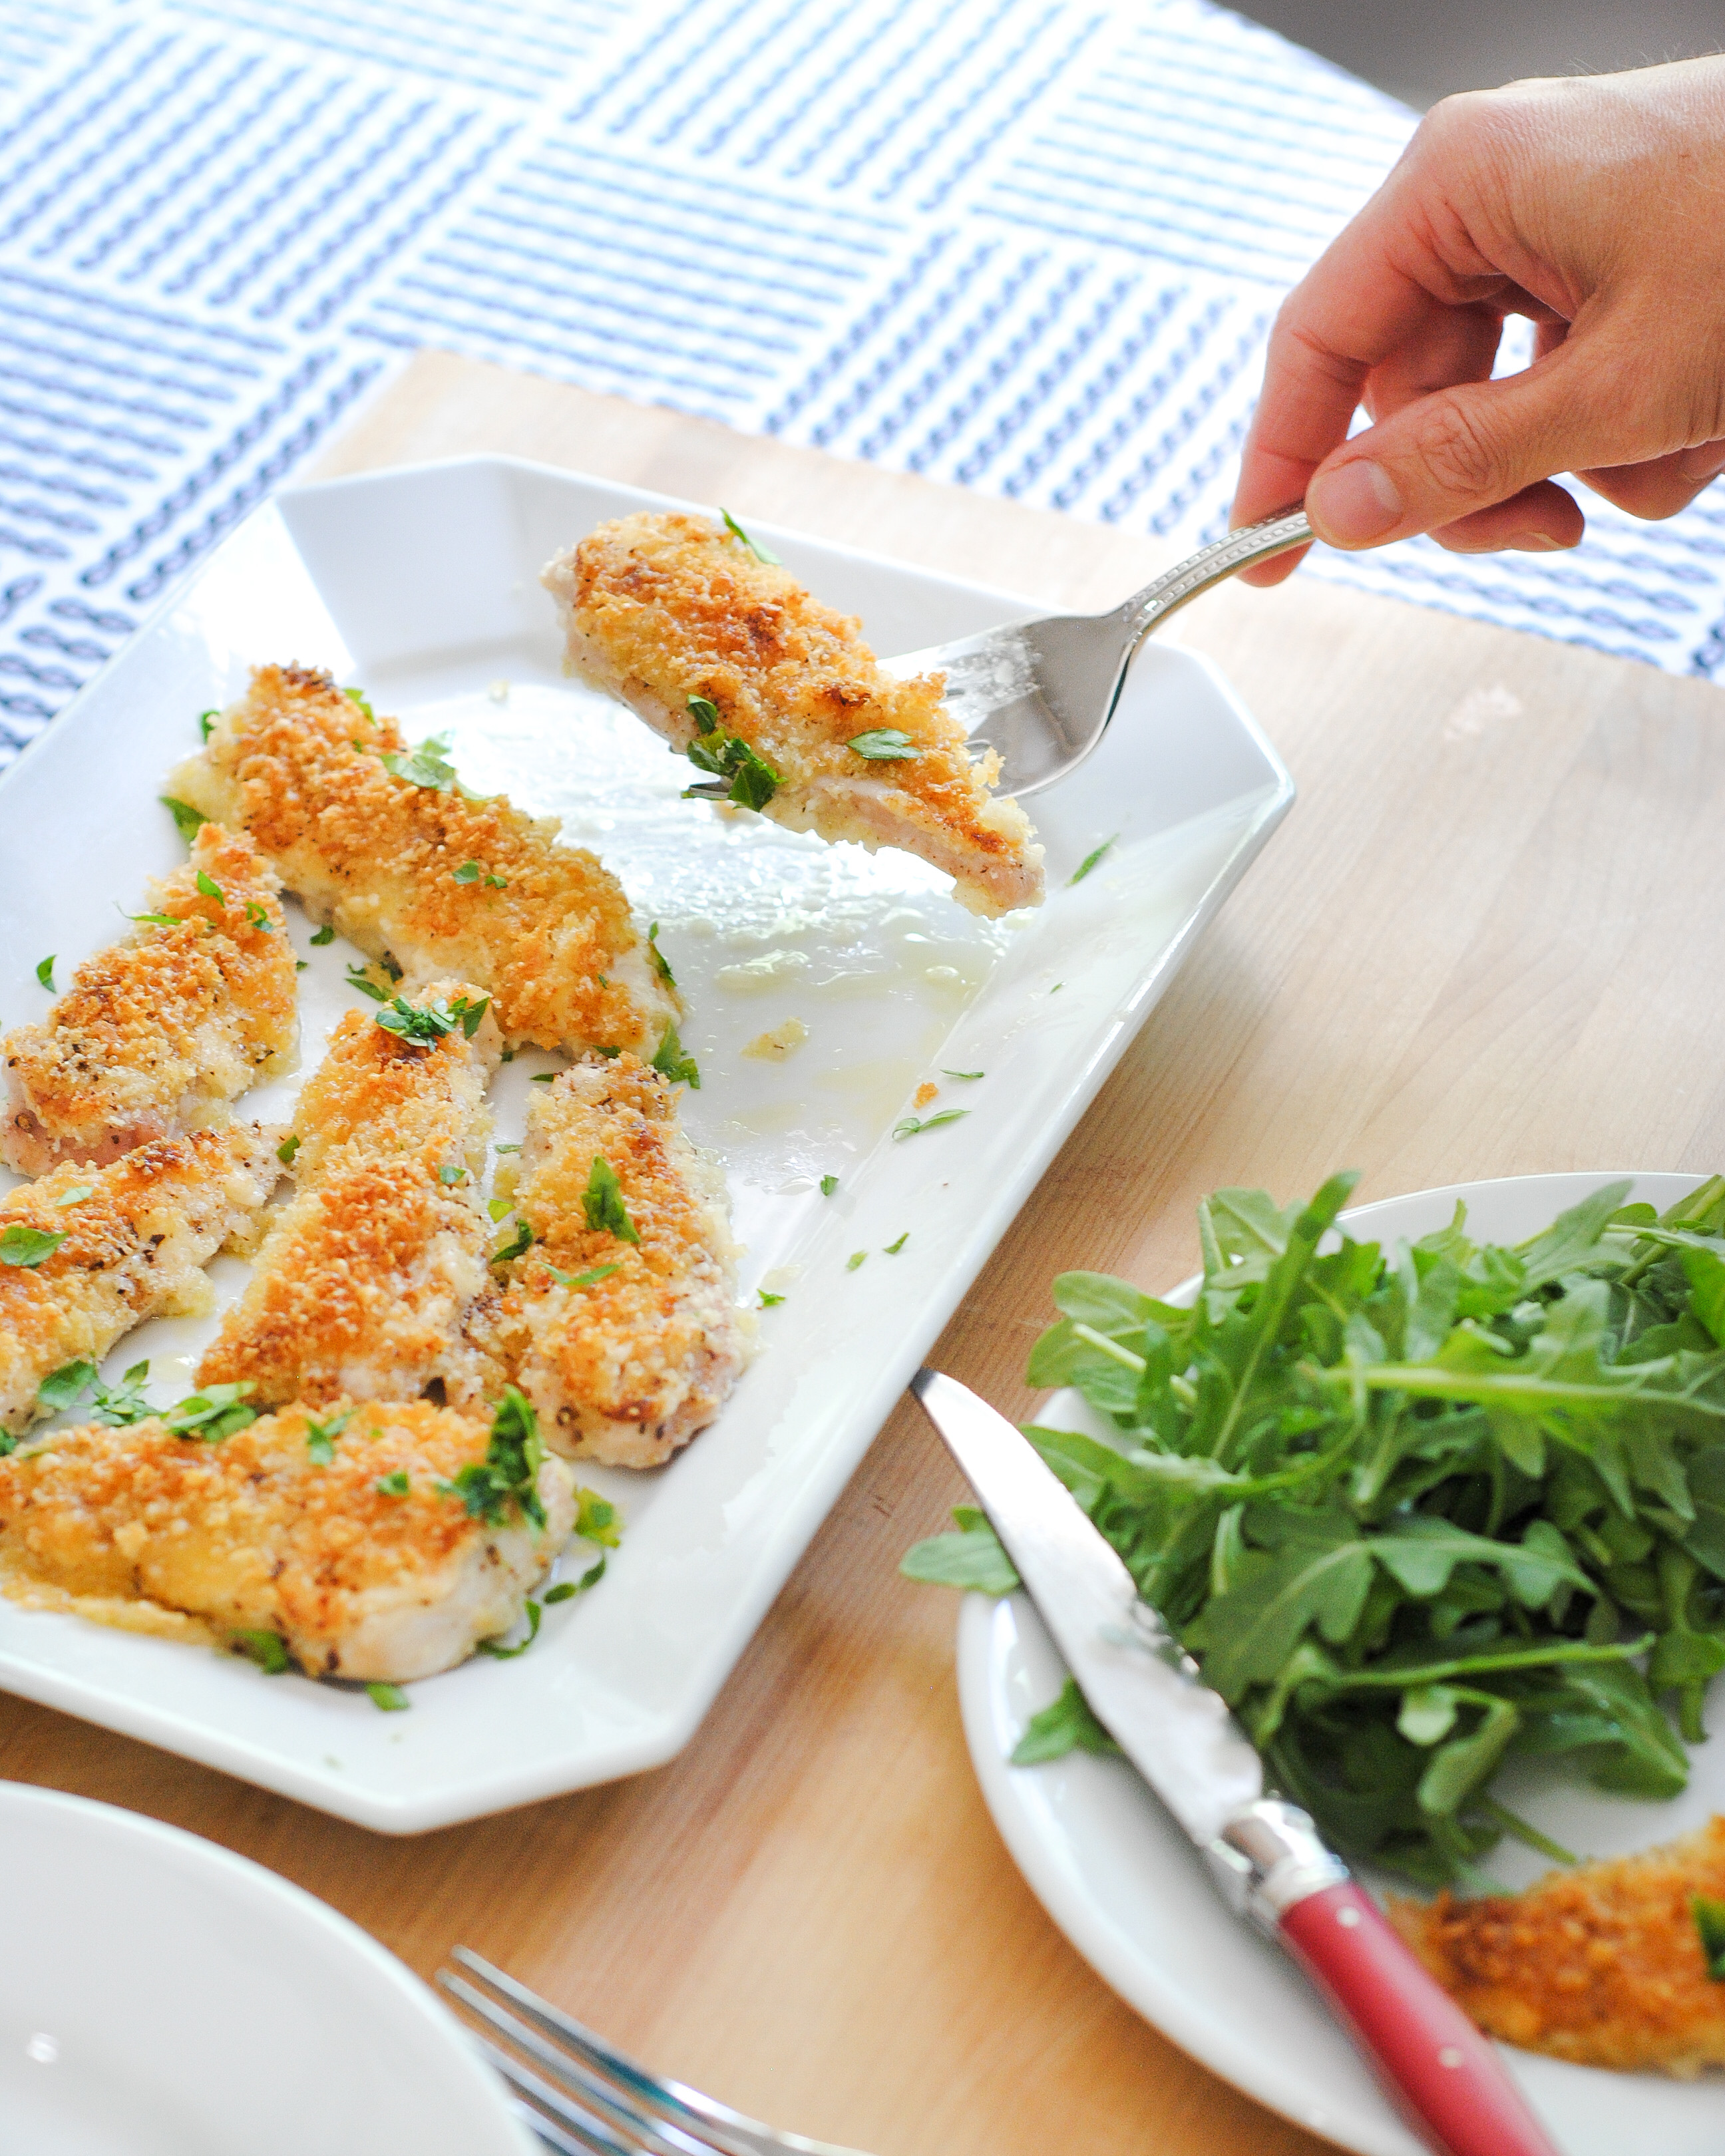 Healthy Veal Cutlet Recipes  Easy Baked Crispy Chicken Cutlets Recipe The Chronicles